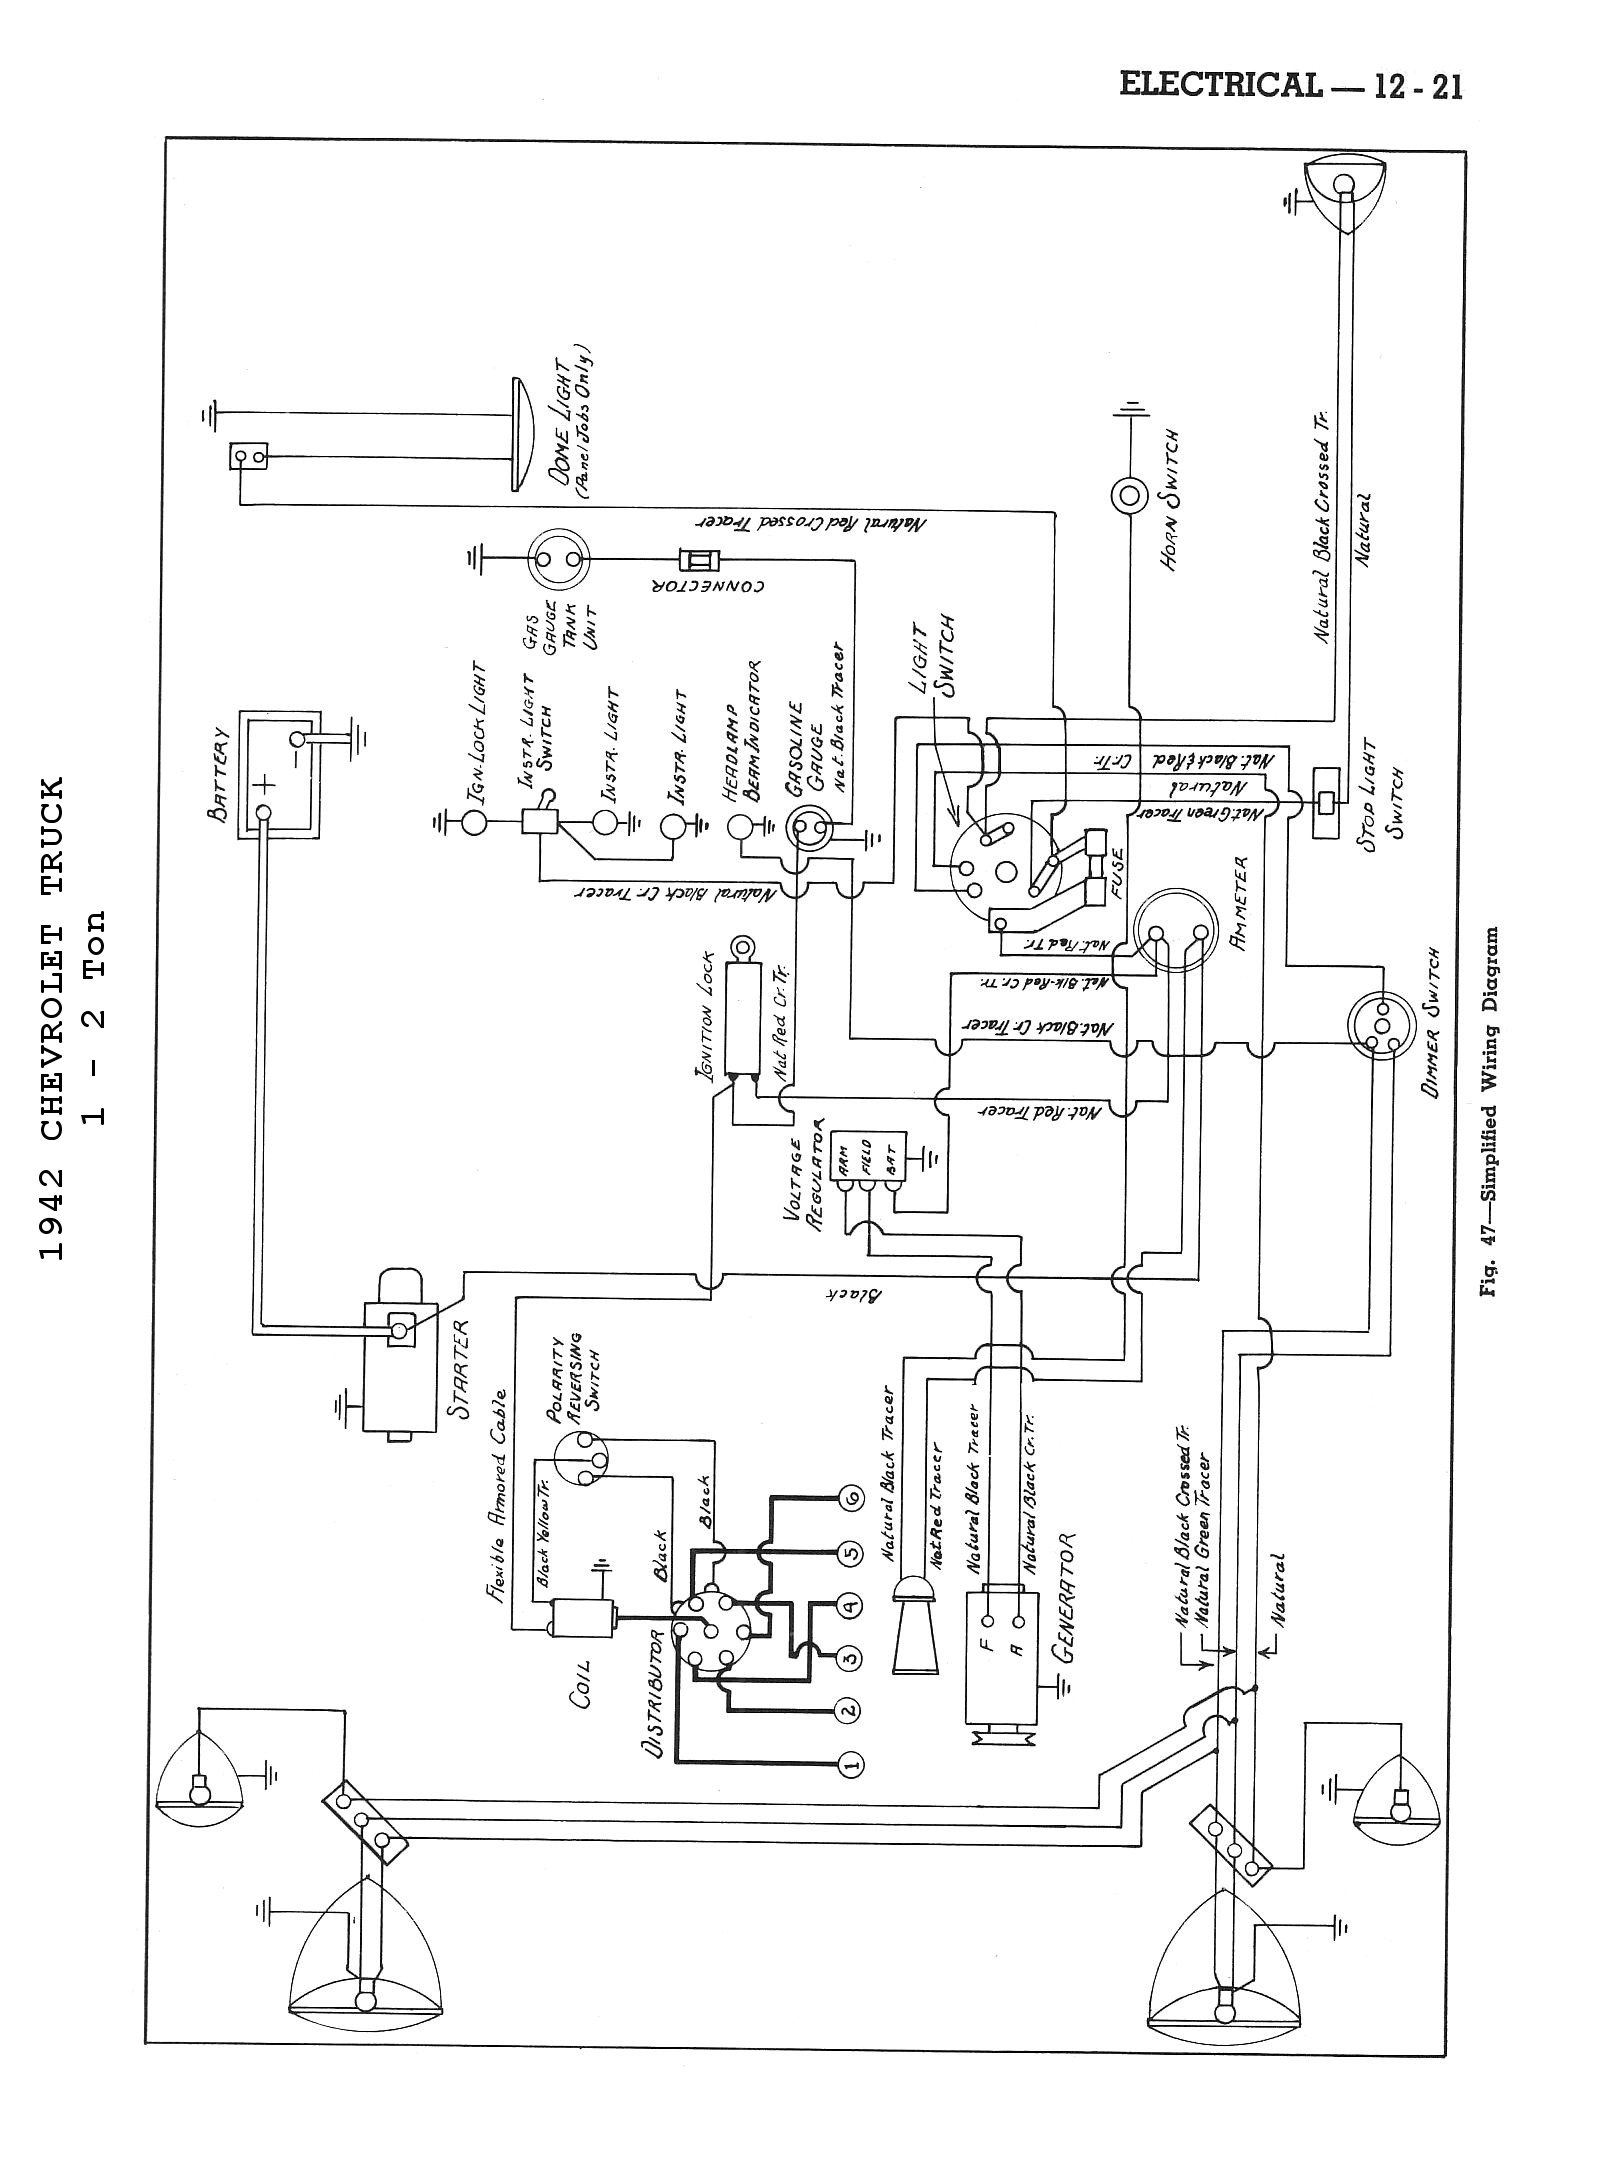 hight resolution of 1942 chevy wiring diagram wiring diagram todays 1942 mercury wiring diagram 1942 chevy wiring diagram